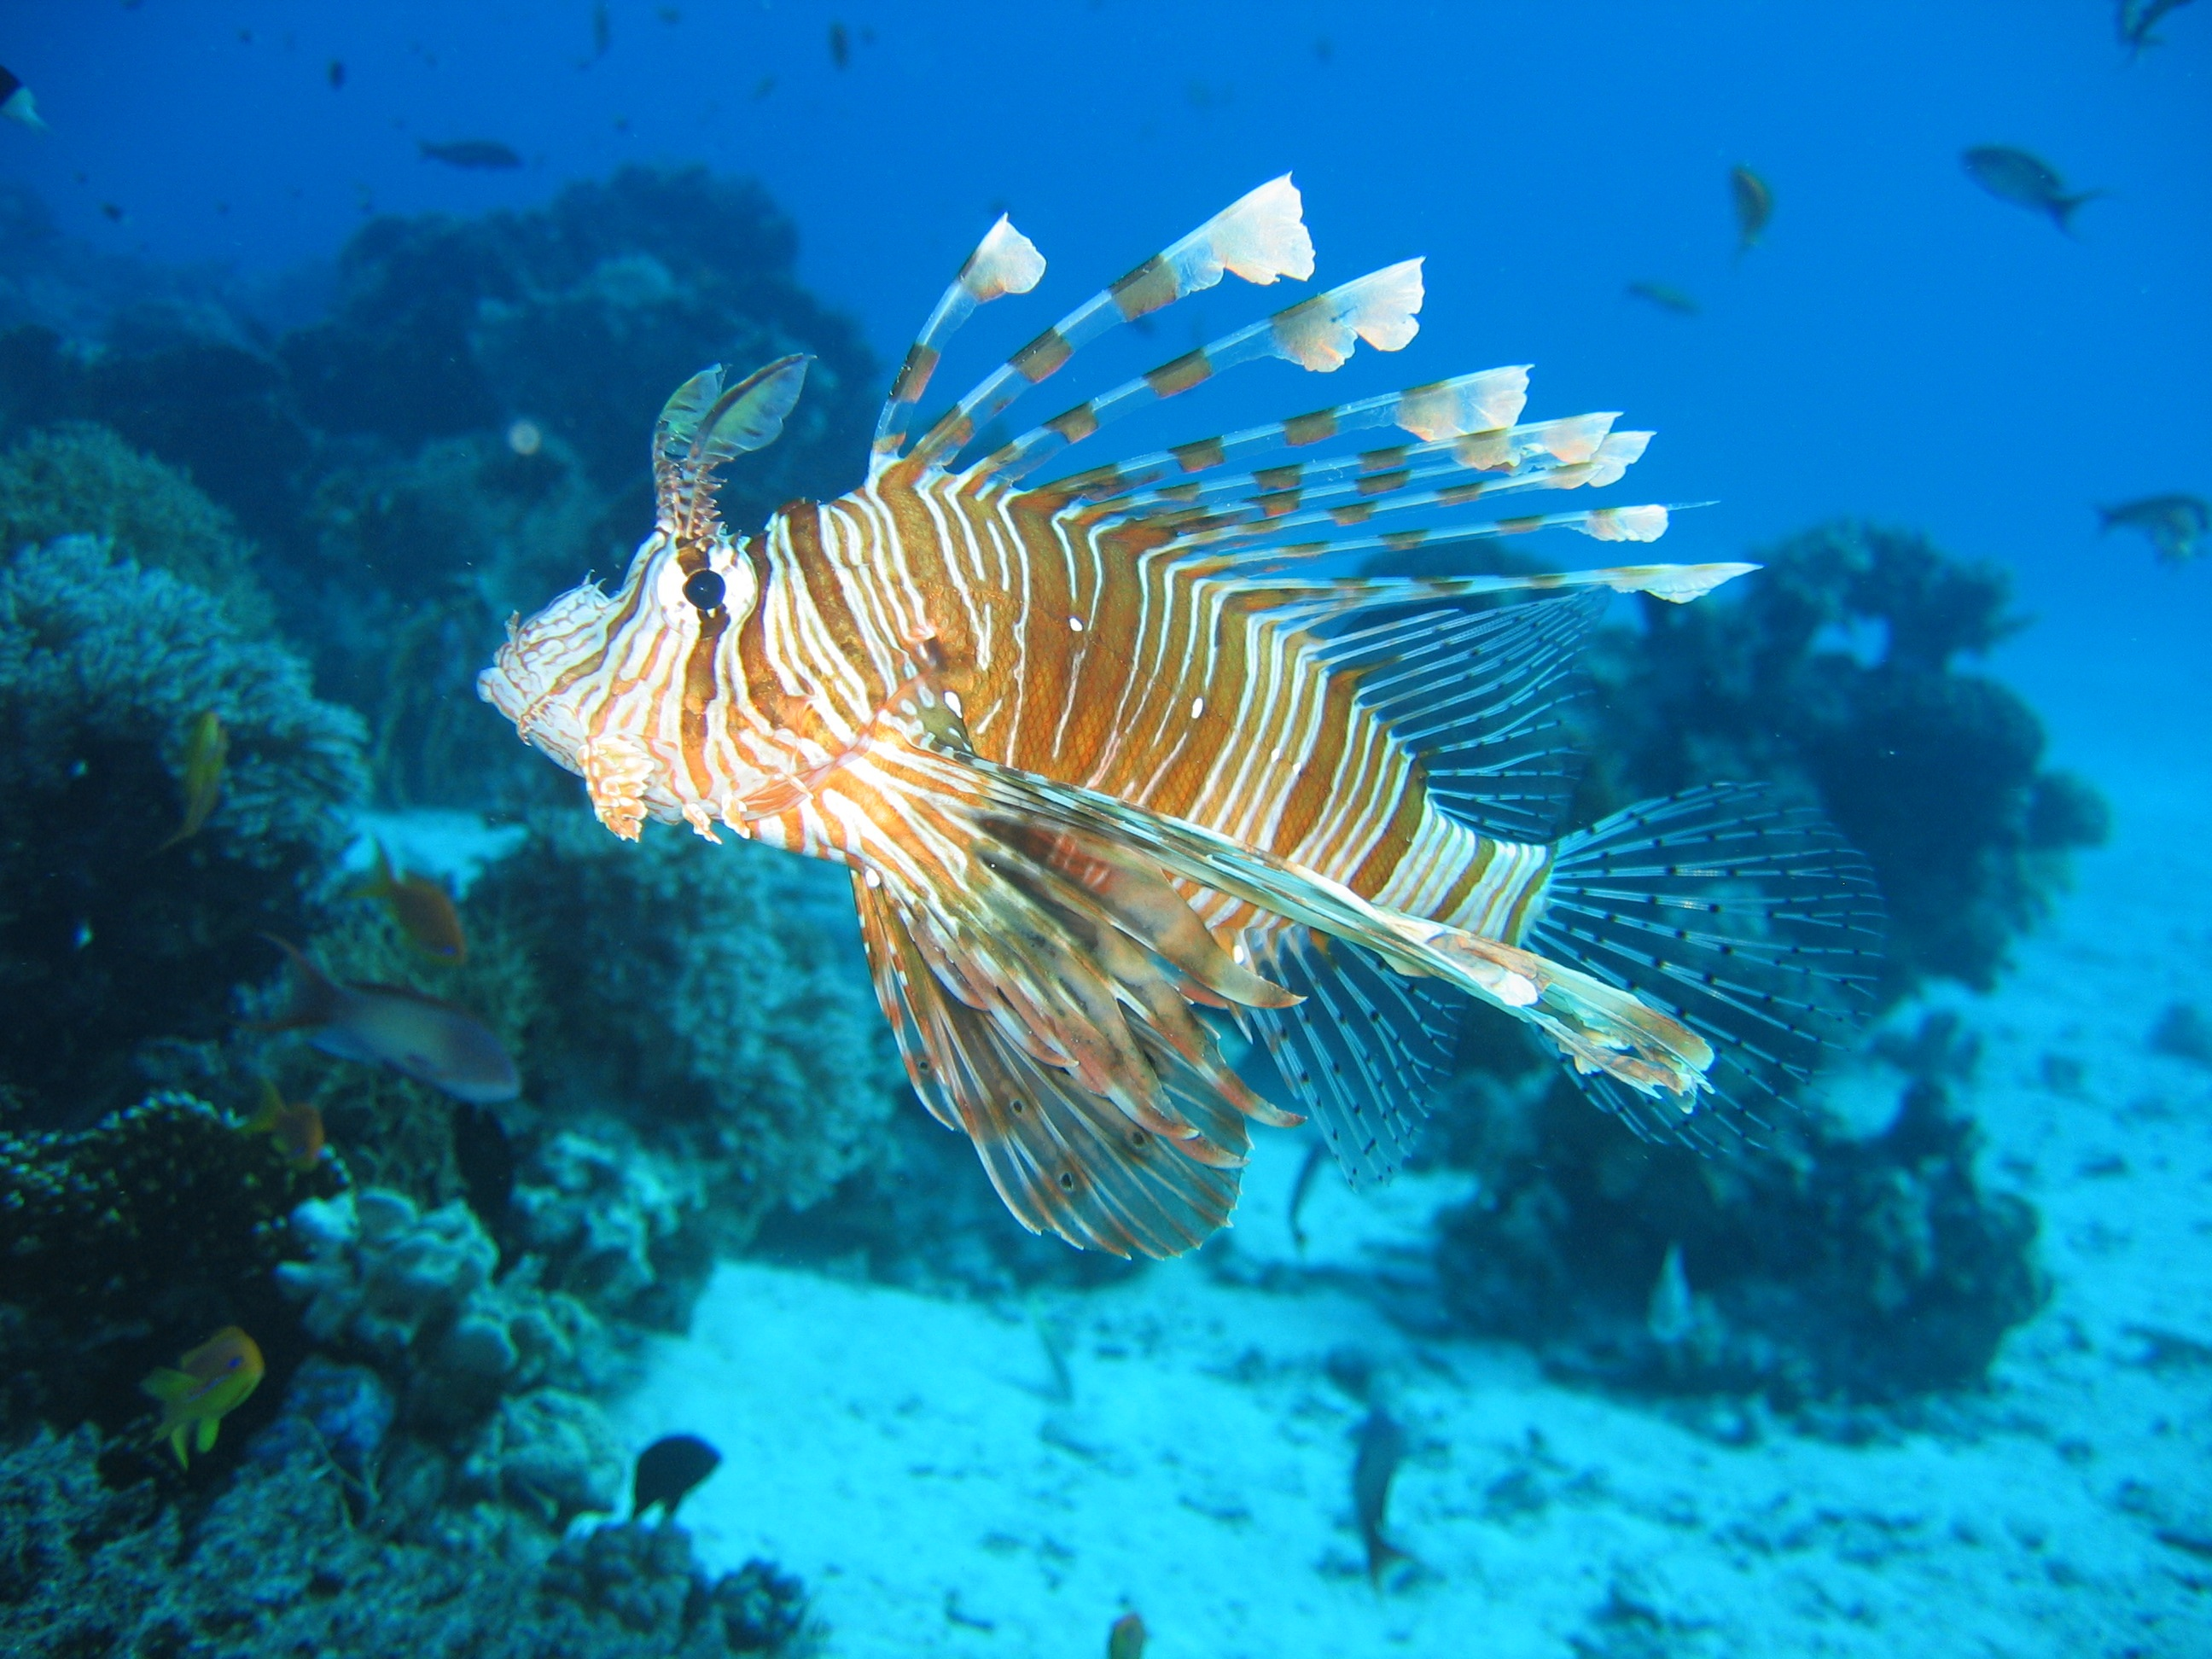 Lionfish in the sea photo